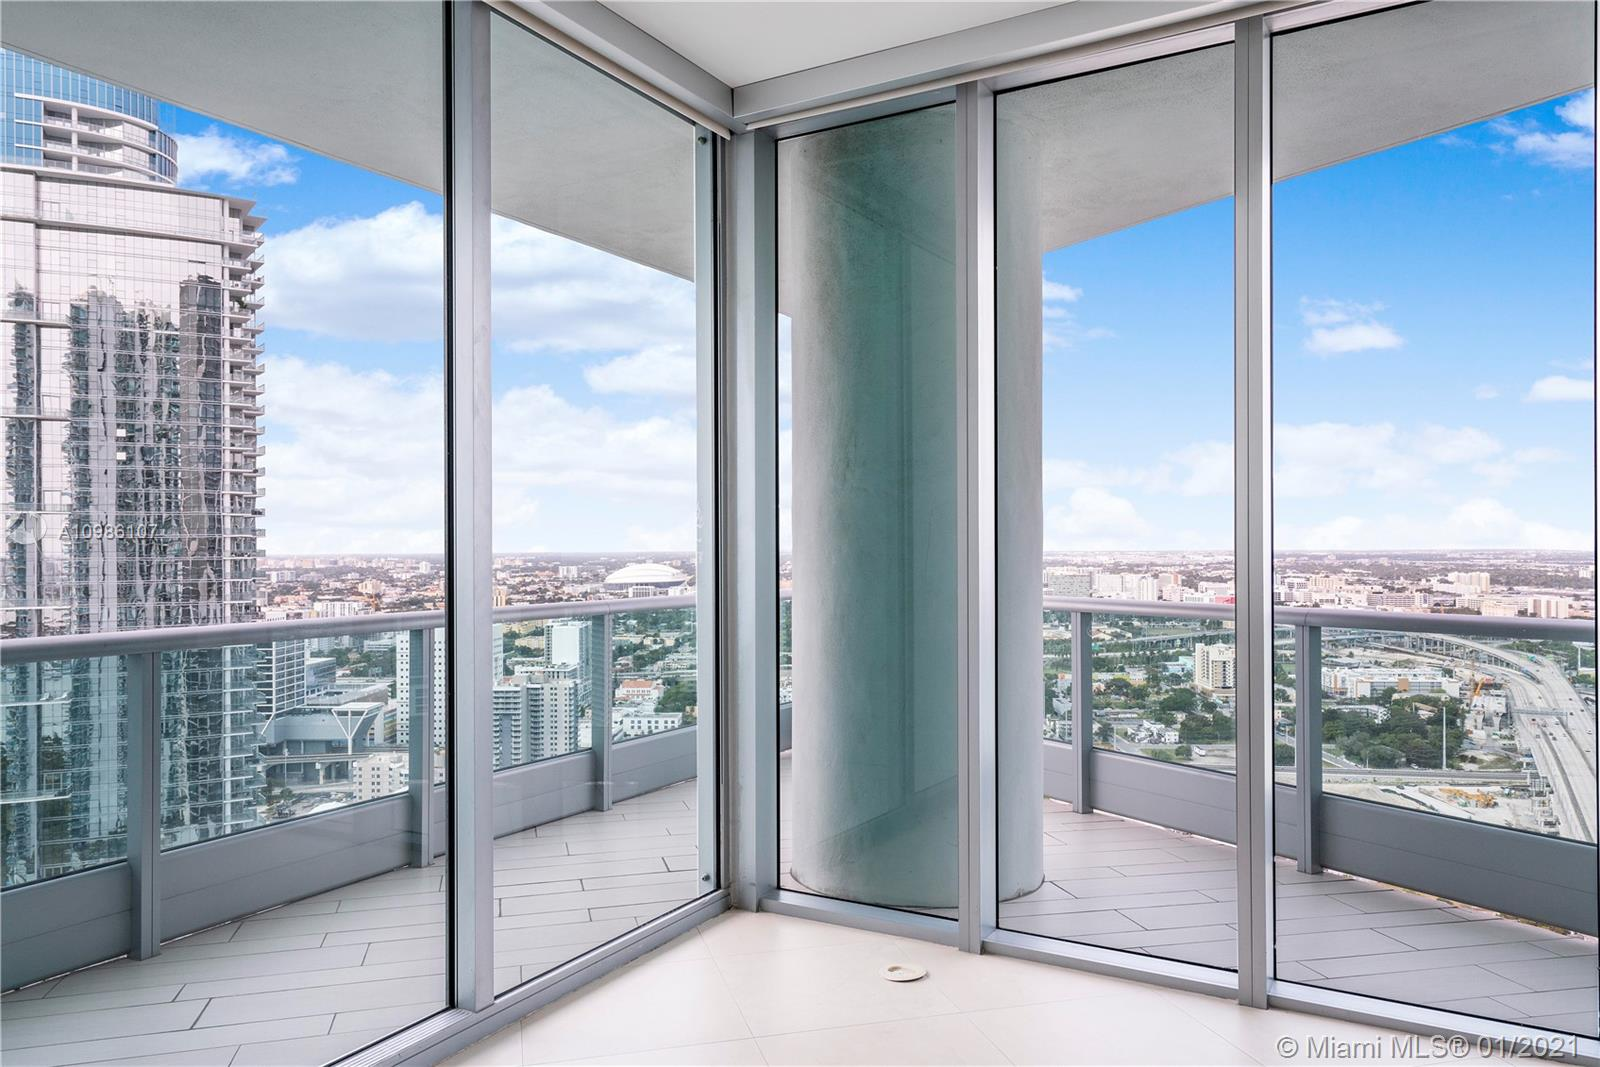 900 Biscayne Blvd # 4312, Miami, Florida 33132, 2 Bedrooms Bedrooms, ,3 BathroomsBathrooms,Residential,For Sale,900 Biscayne Blvd # 4312,A10986107